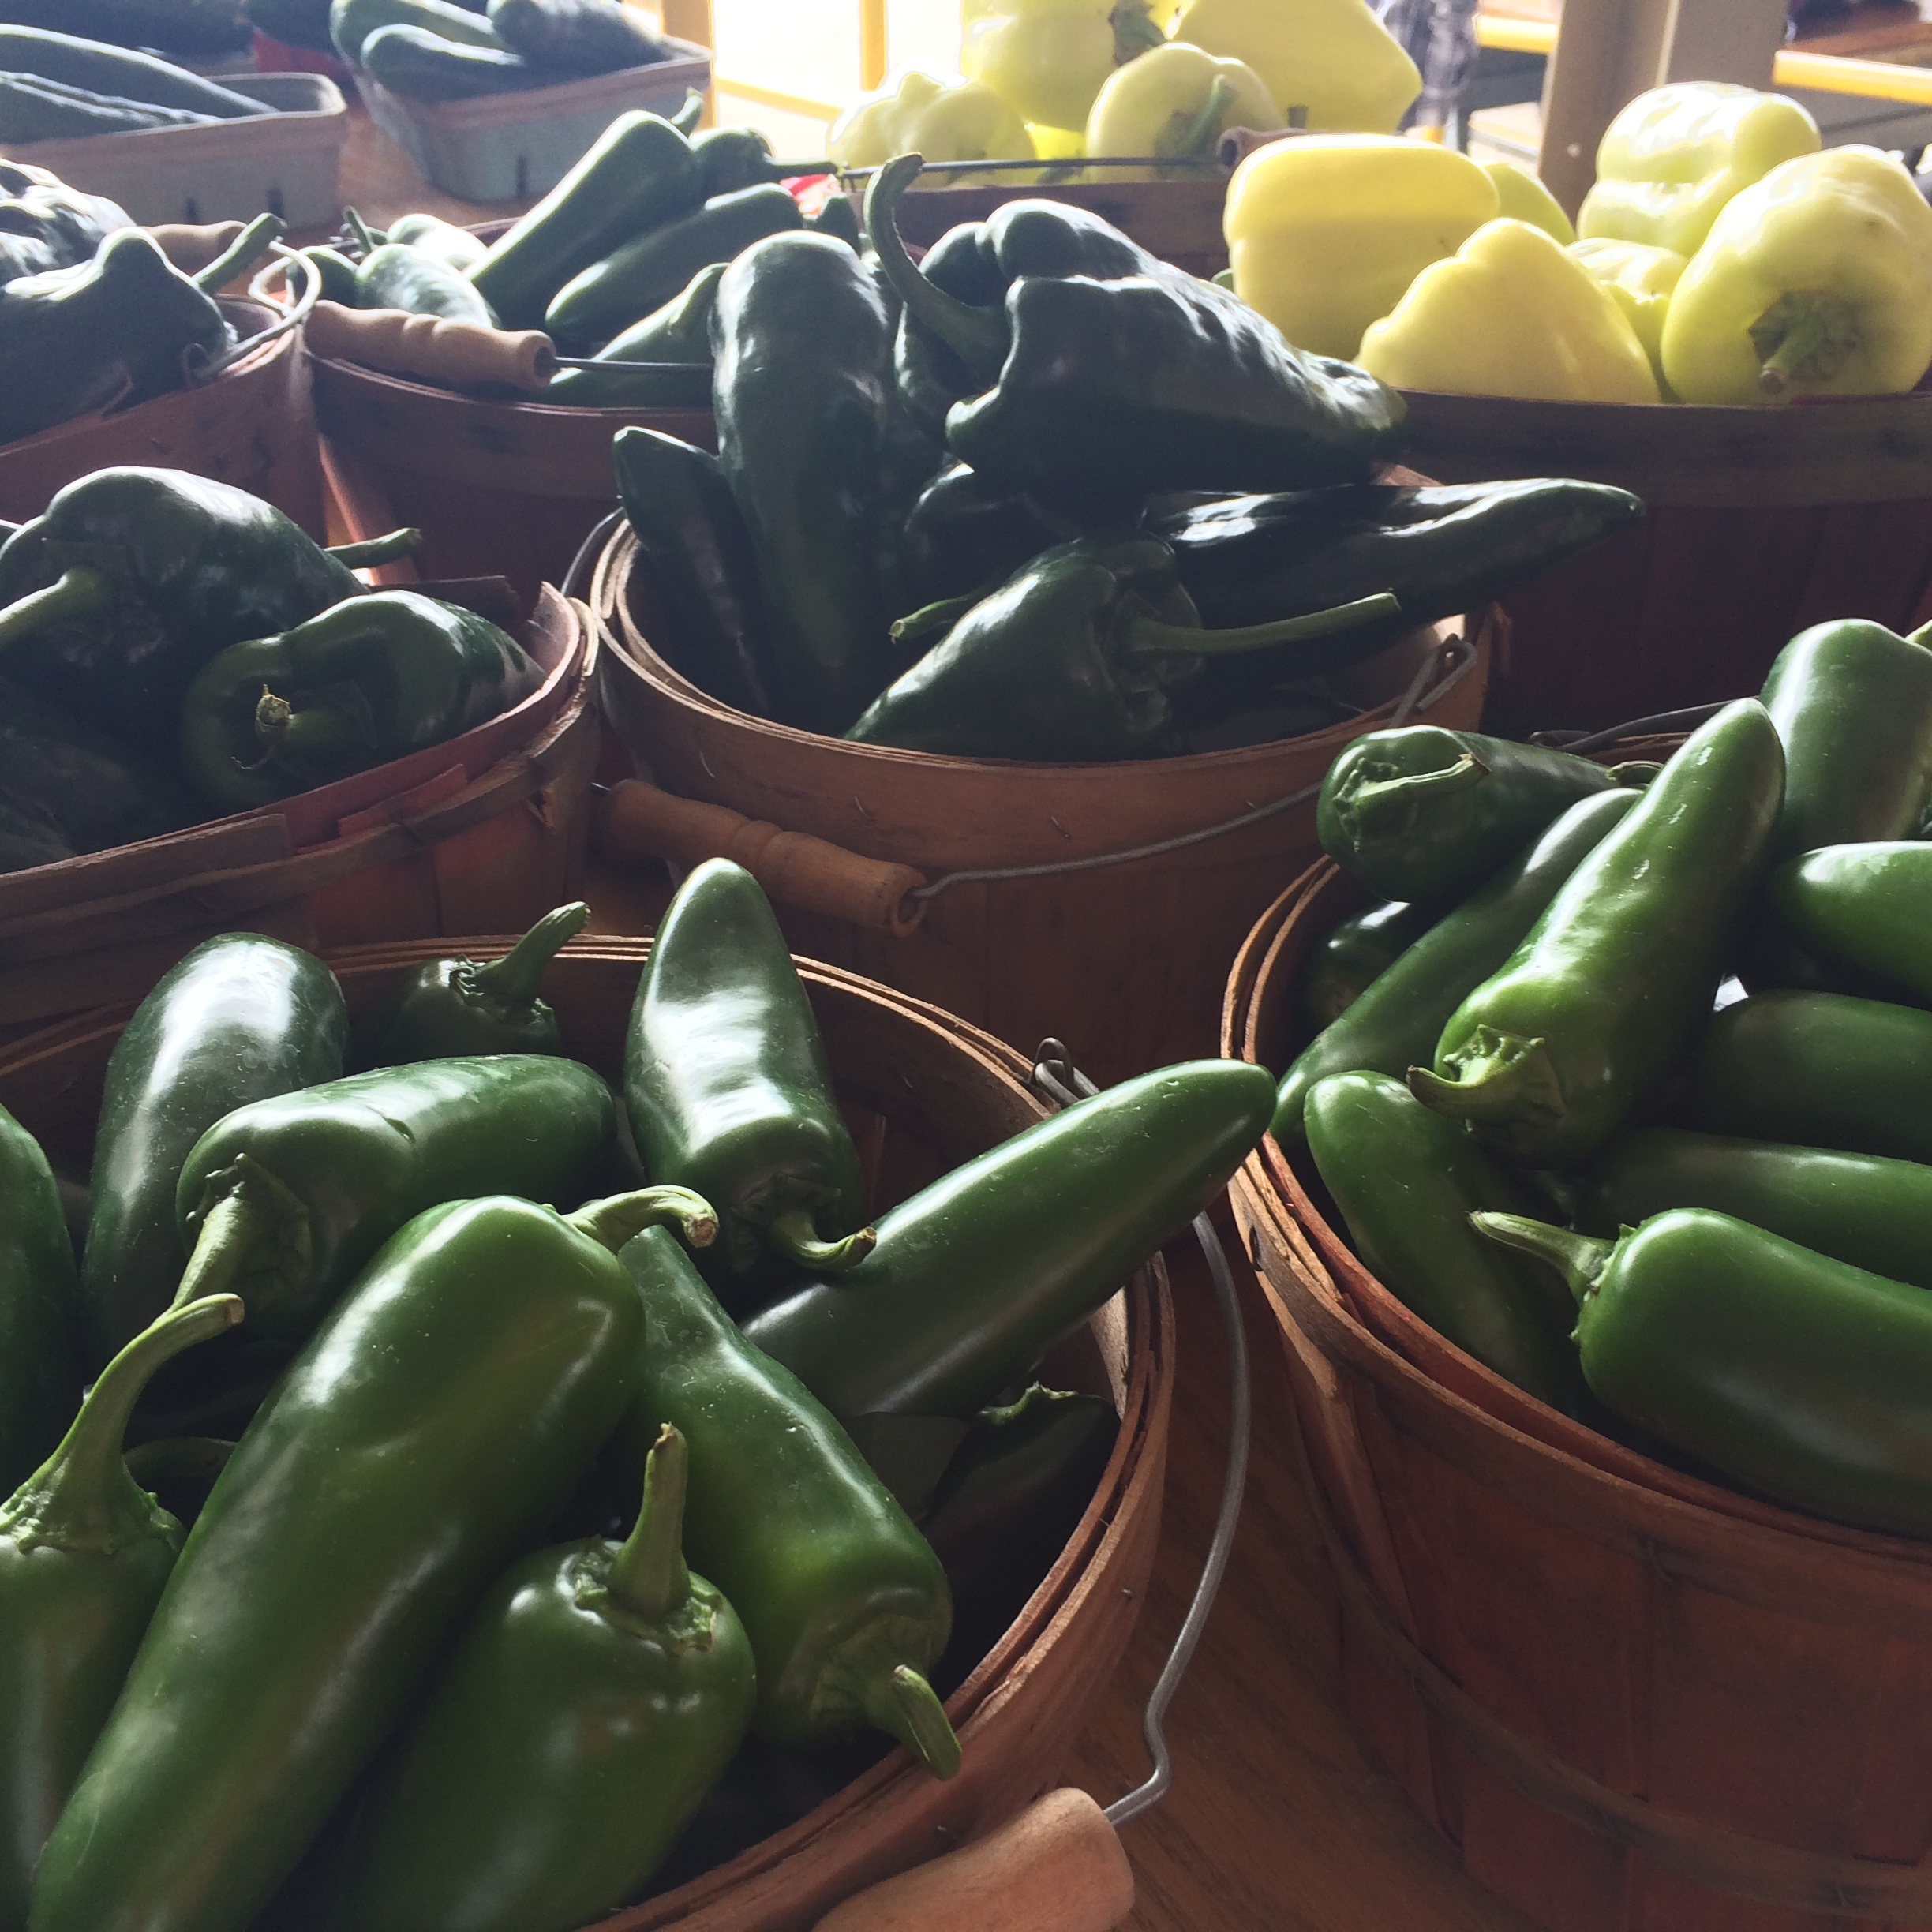 Crisp jalapenos and poblanos at the market